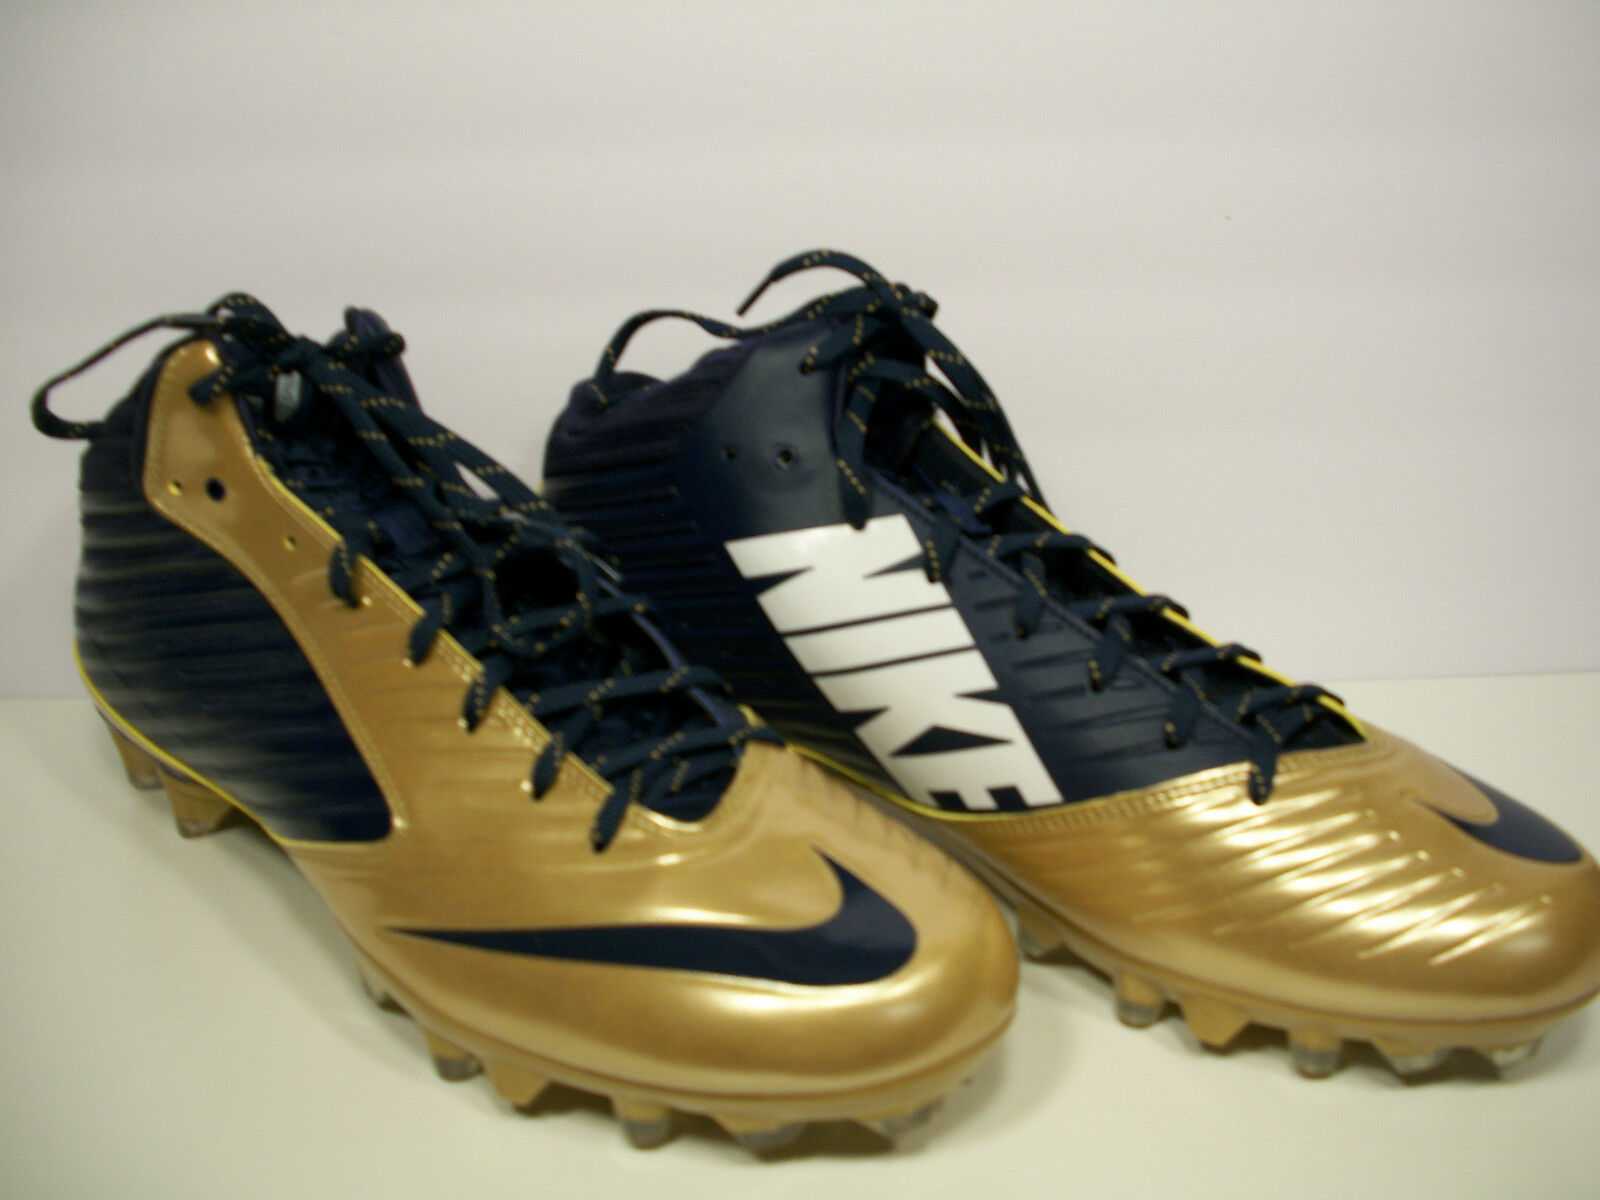 NIKE Vapor Speed 3/4 TD Football Cleats 15 668839-426 Navy Blue/Gold Size 15 Cleats 561ee2